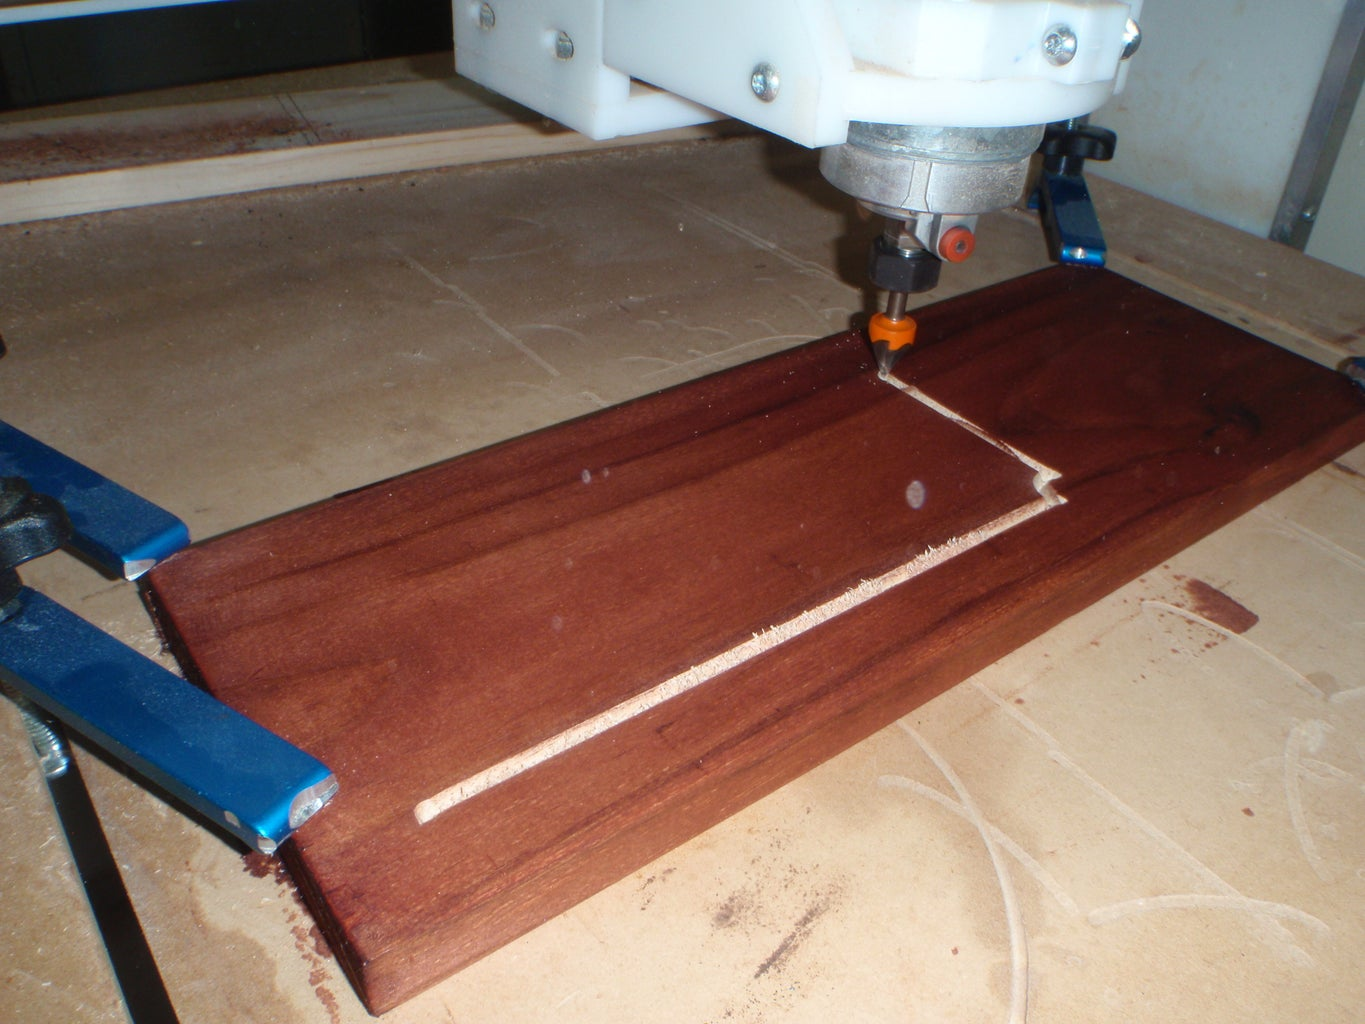 Setting Up the CNC Router